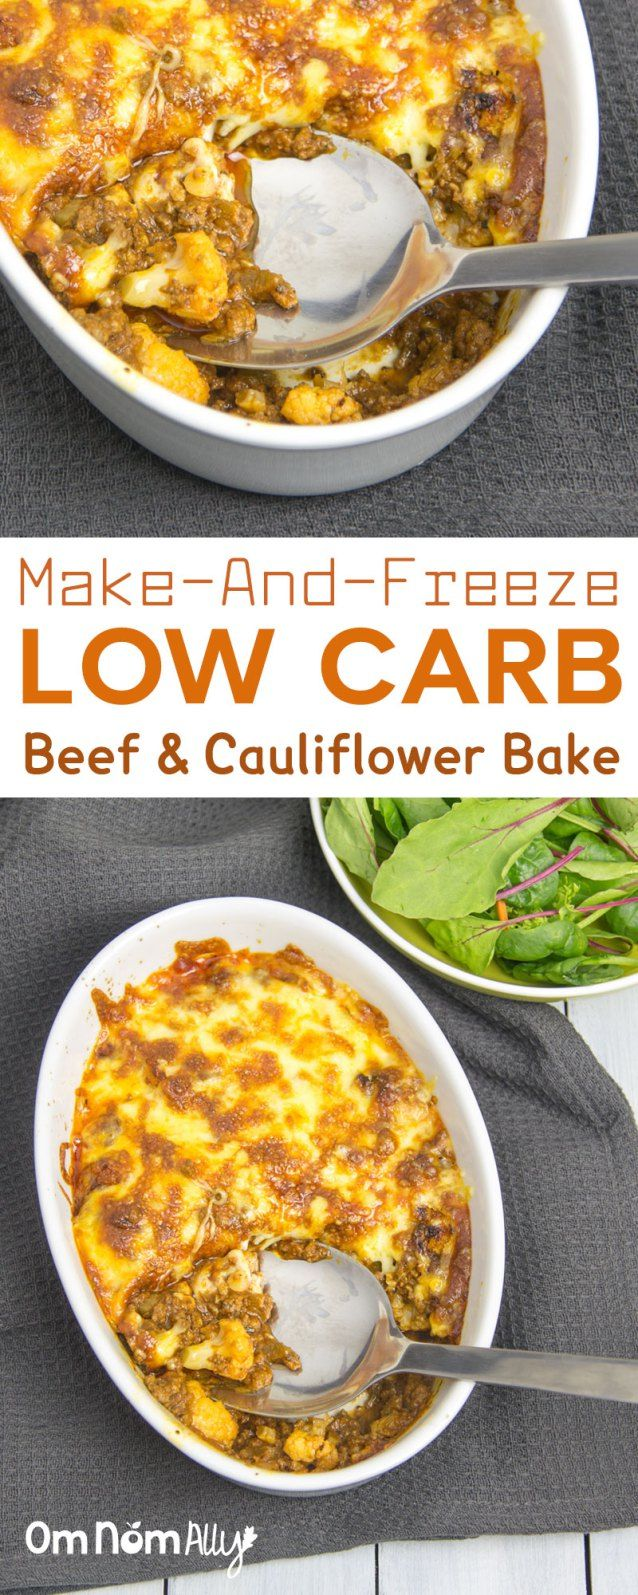 (Make-And-Freeze) Low Carb Beef & Cauliflower 'Pasta' Bake @OmNomAlly